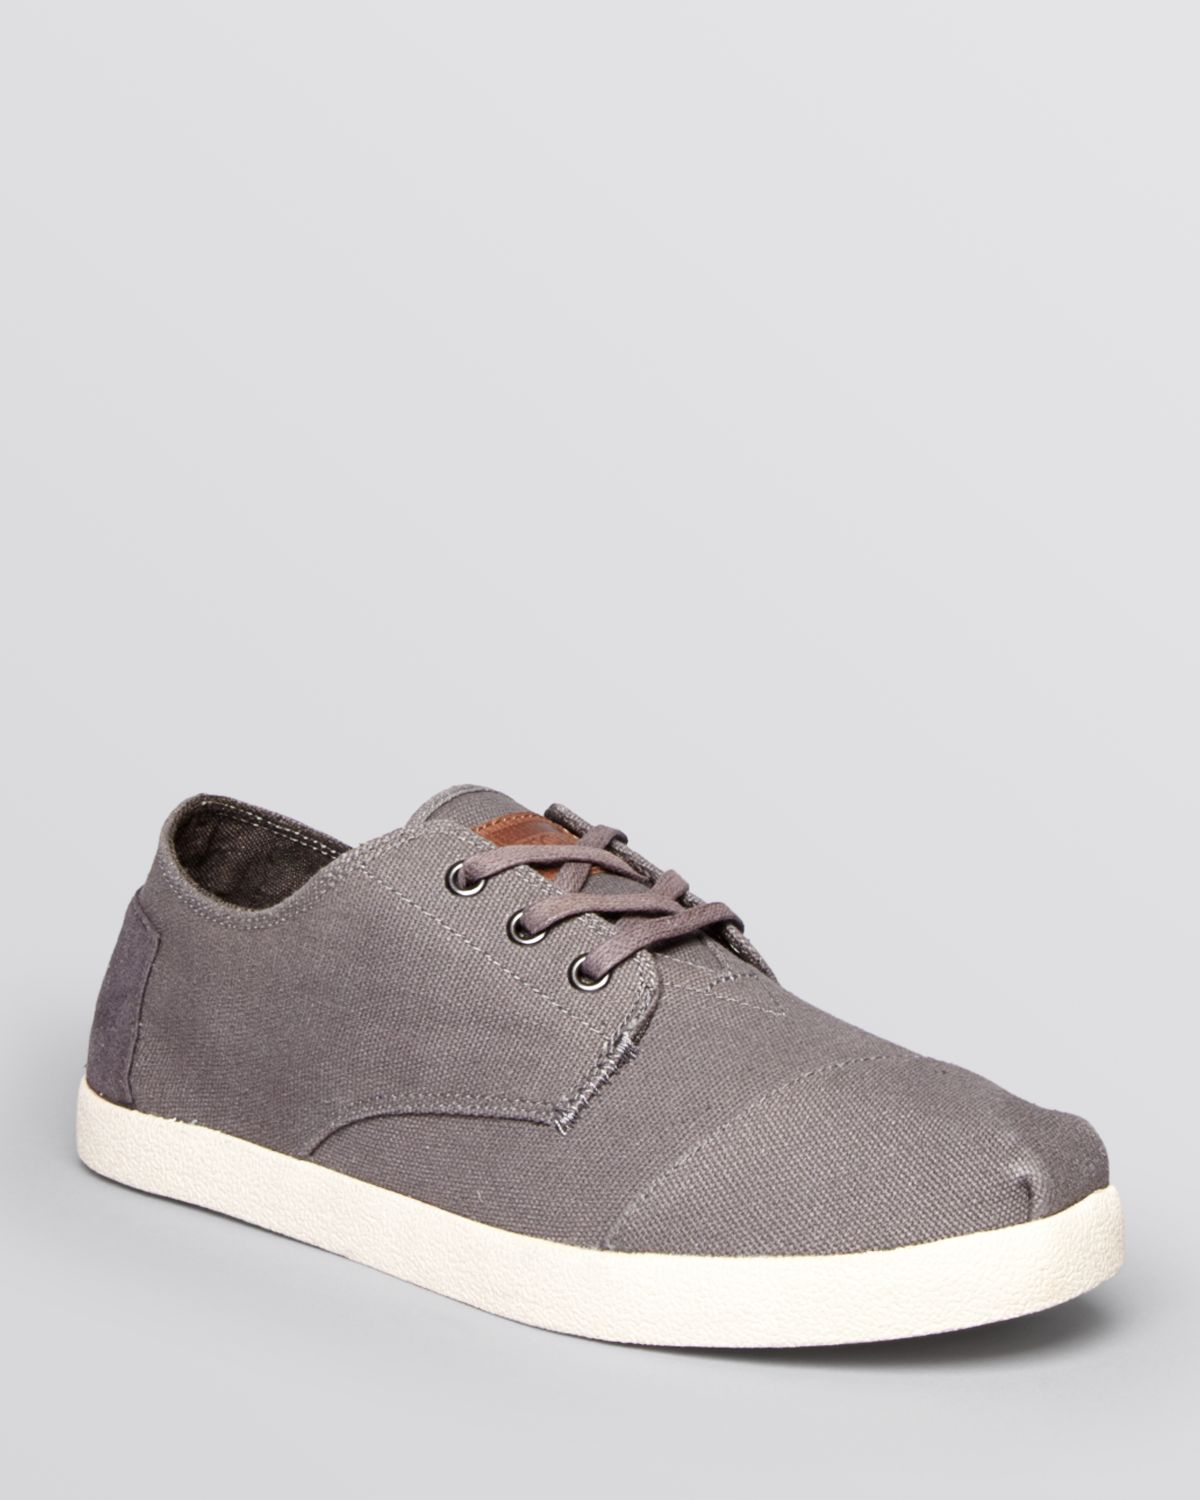 toms paseo canvas lace up sneakers in gray for grey